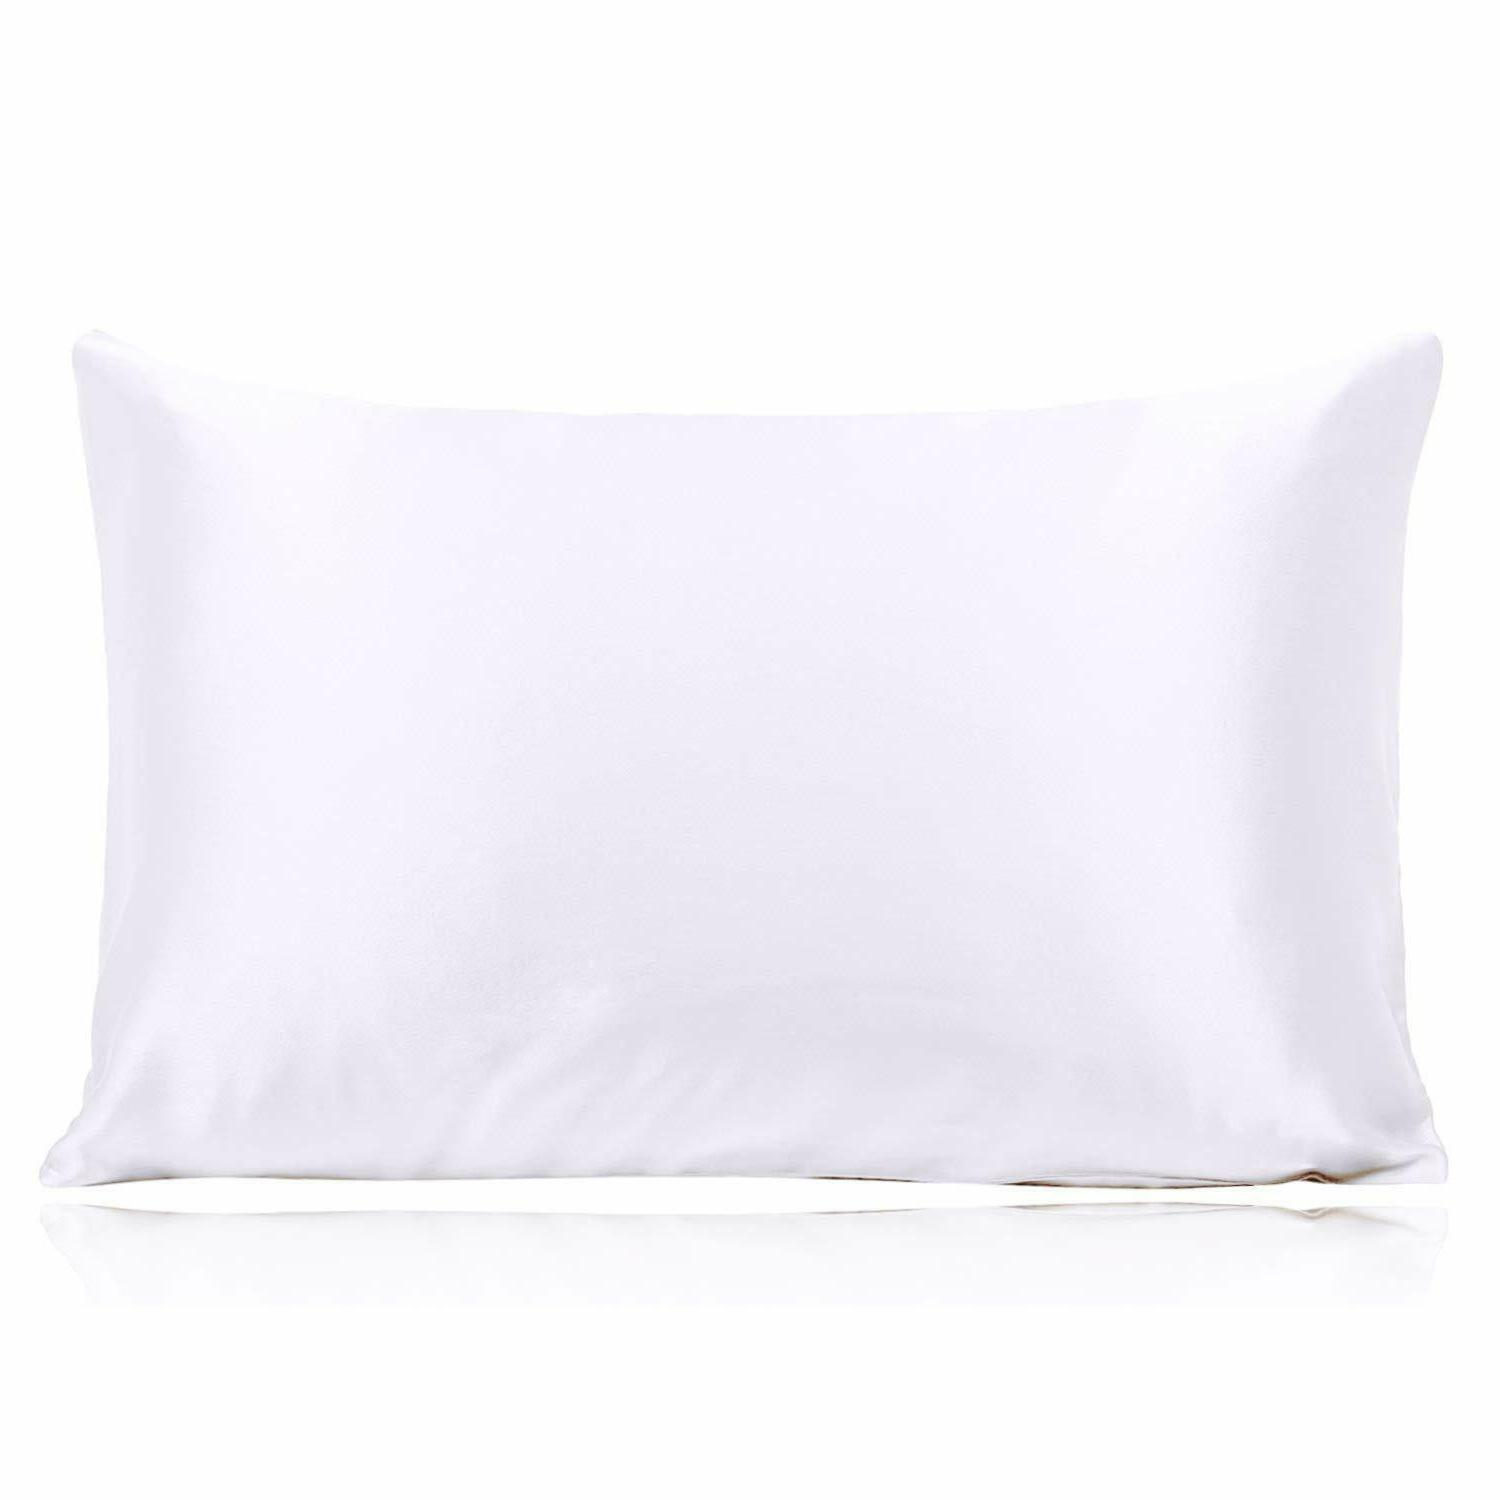 new silkslip pillow case standard 20x26 100